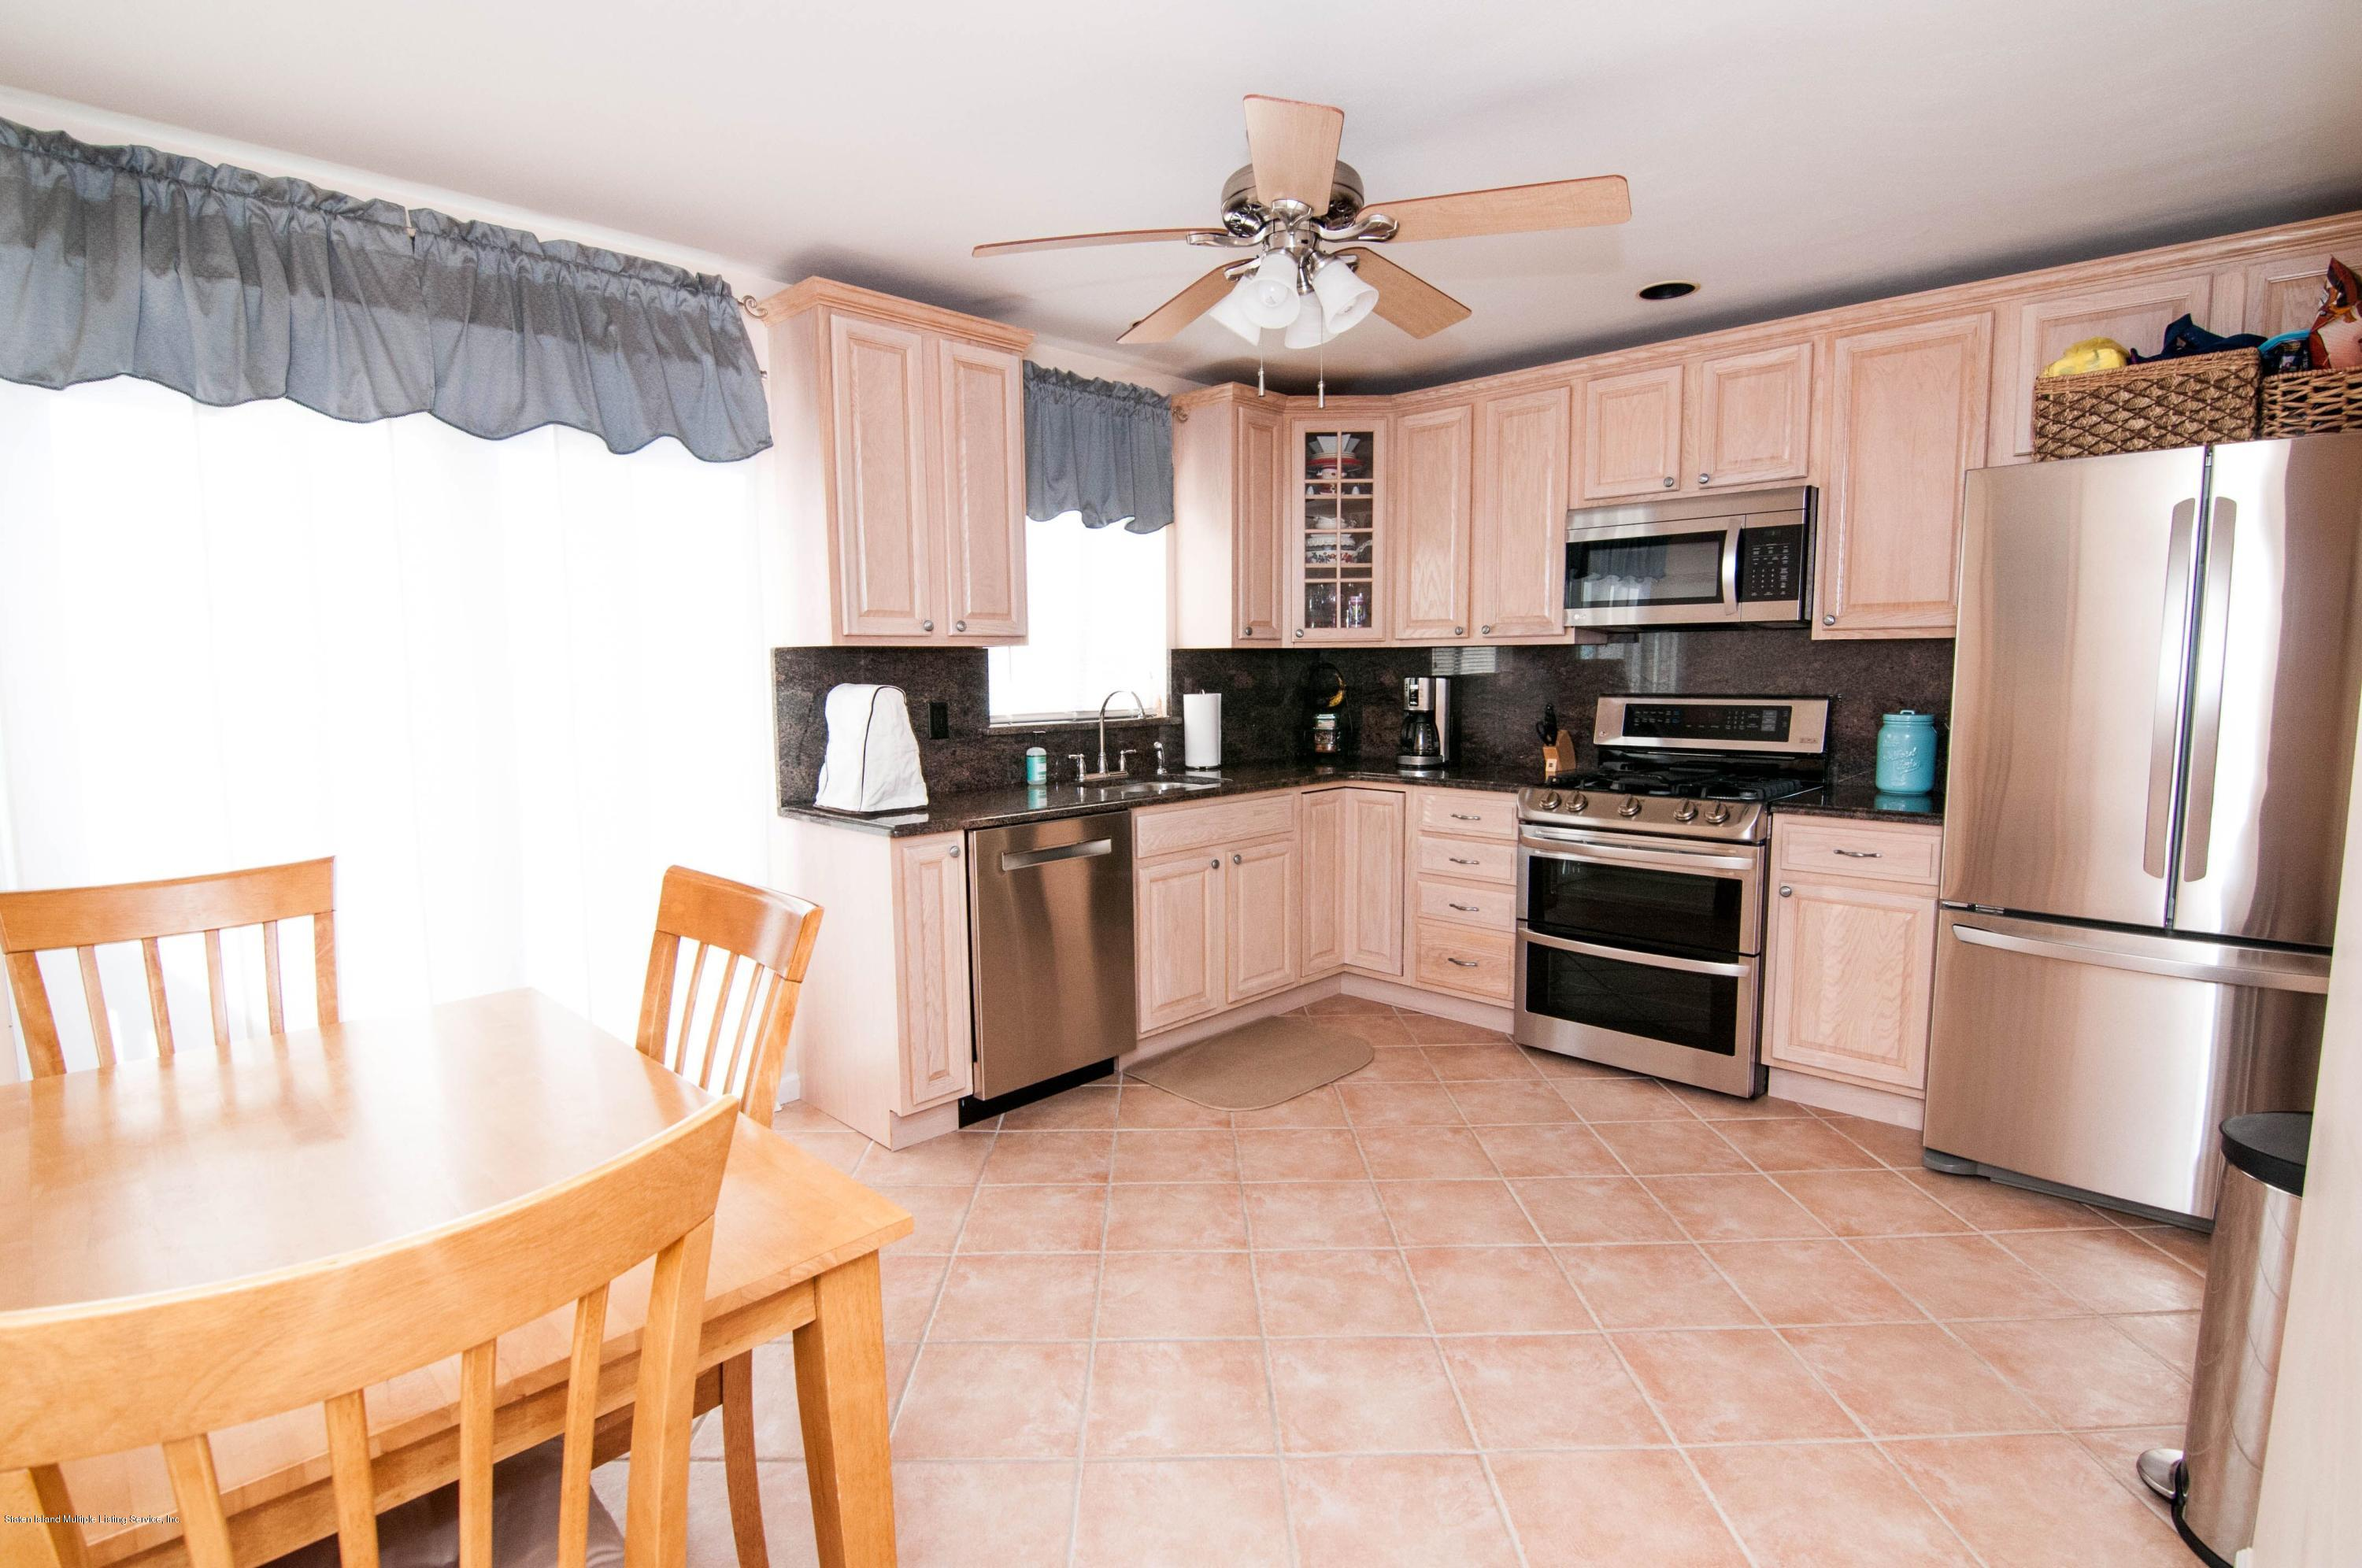 Single Family - Attached 56 Endview Street  Staten Island, NY 10312, MLS-1131439-12